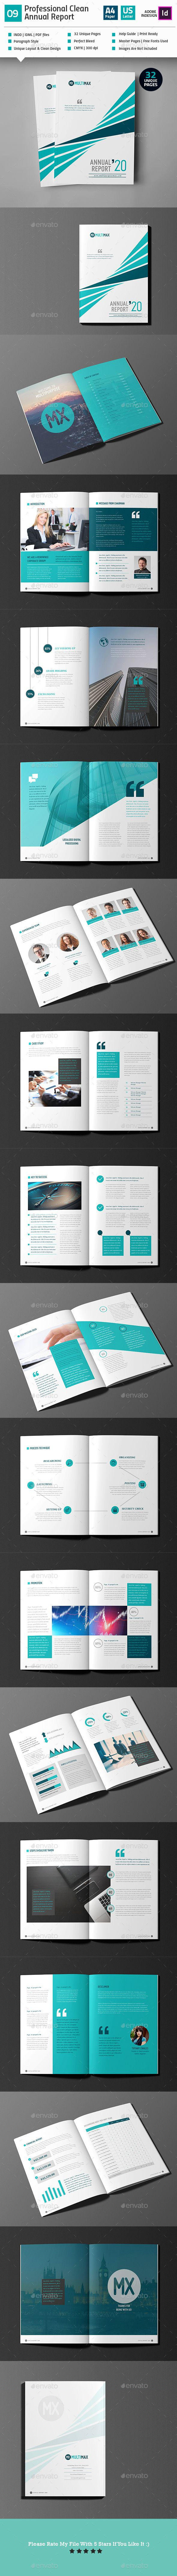 Clean Annual Report Template InDesign INDD